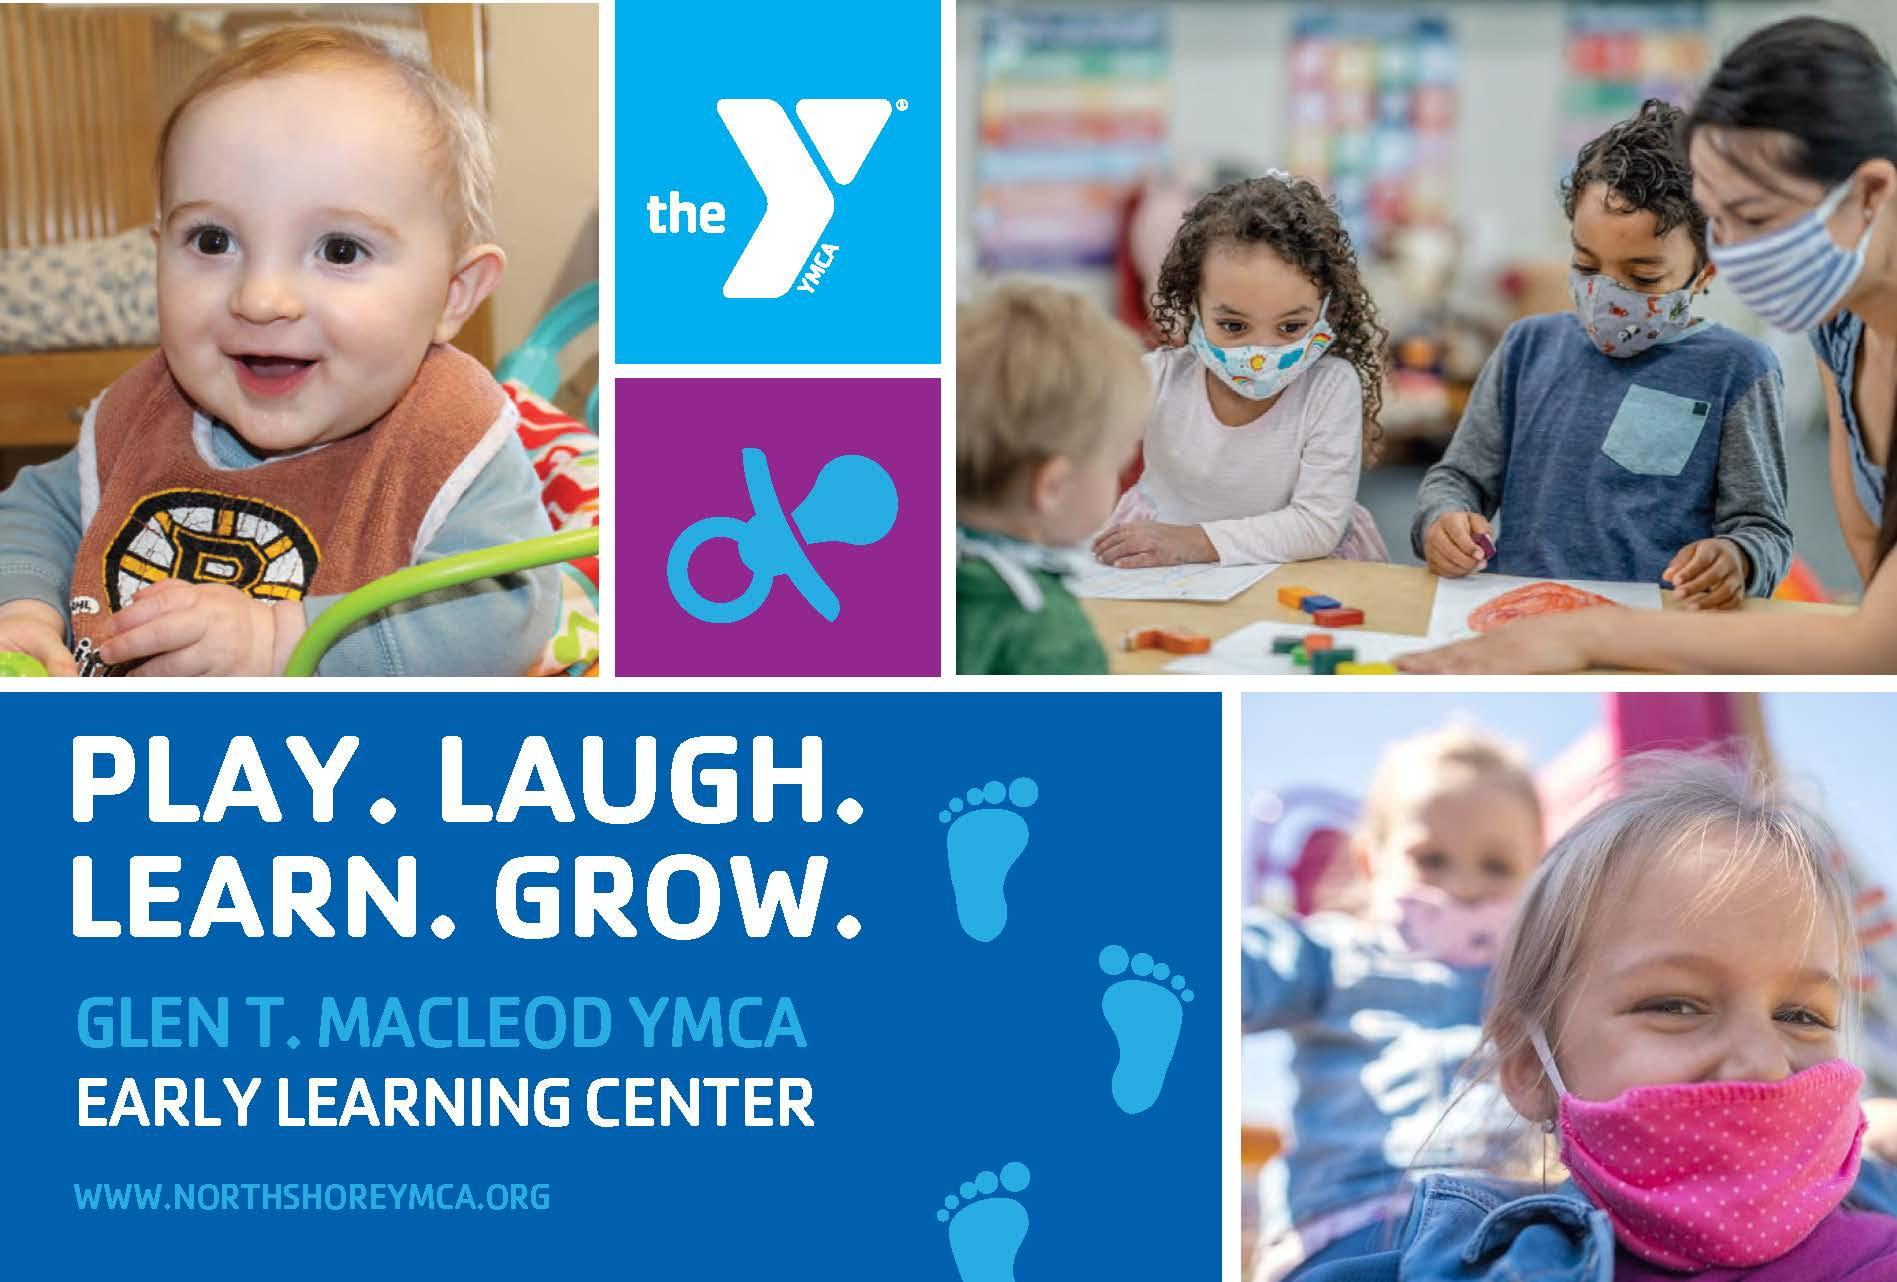 New Cape Ann Y Early Learning Center